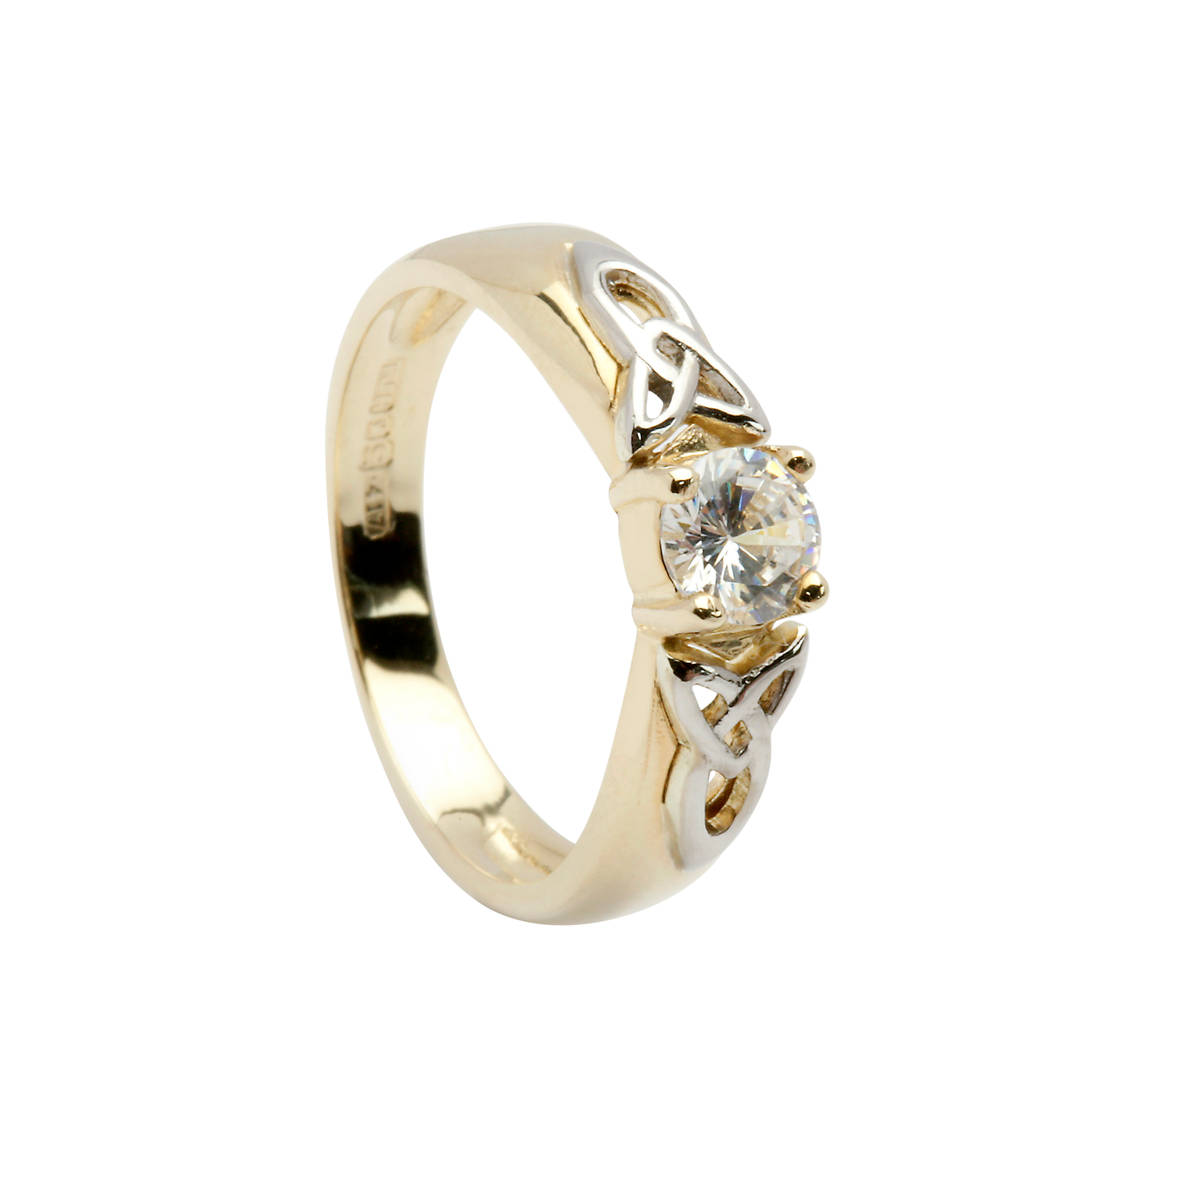 10 ct yellow gold cz solitaire ring with knot detail